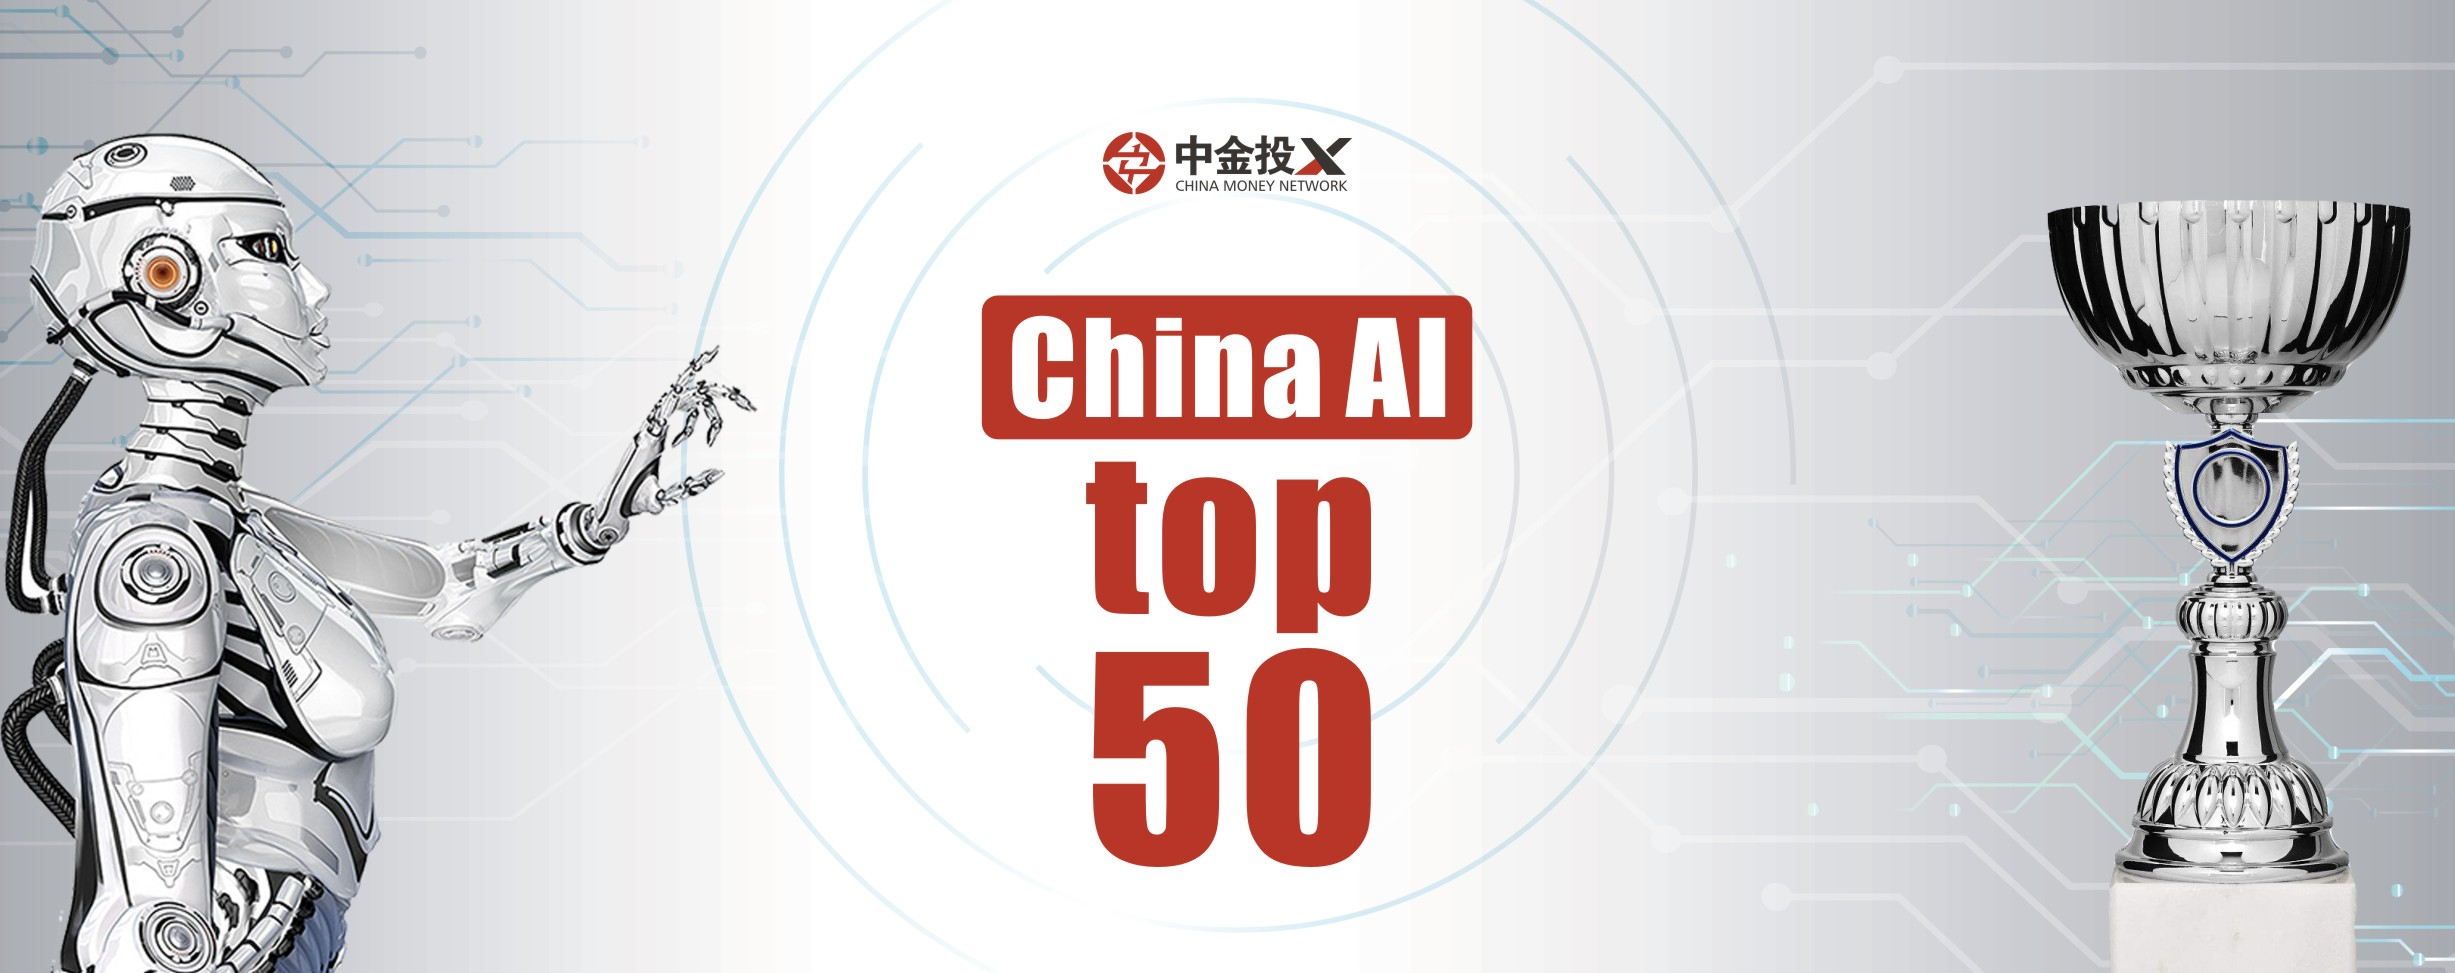 China AI Top 50 Nominations